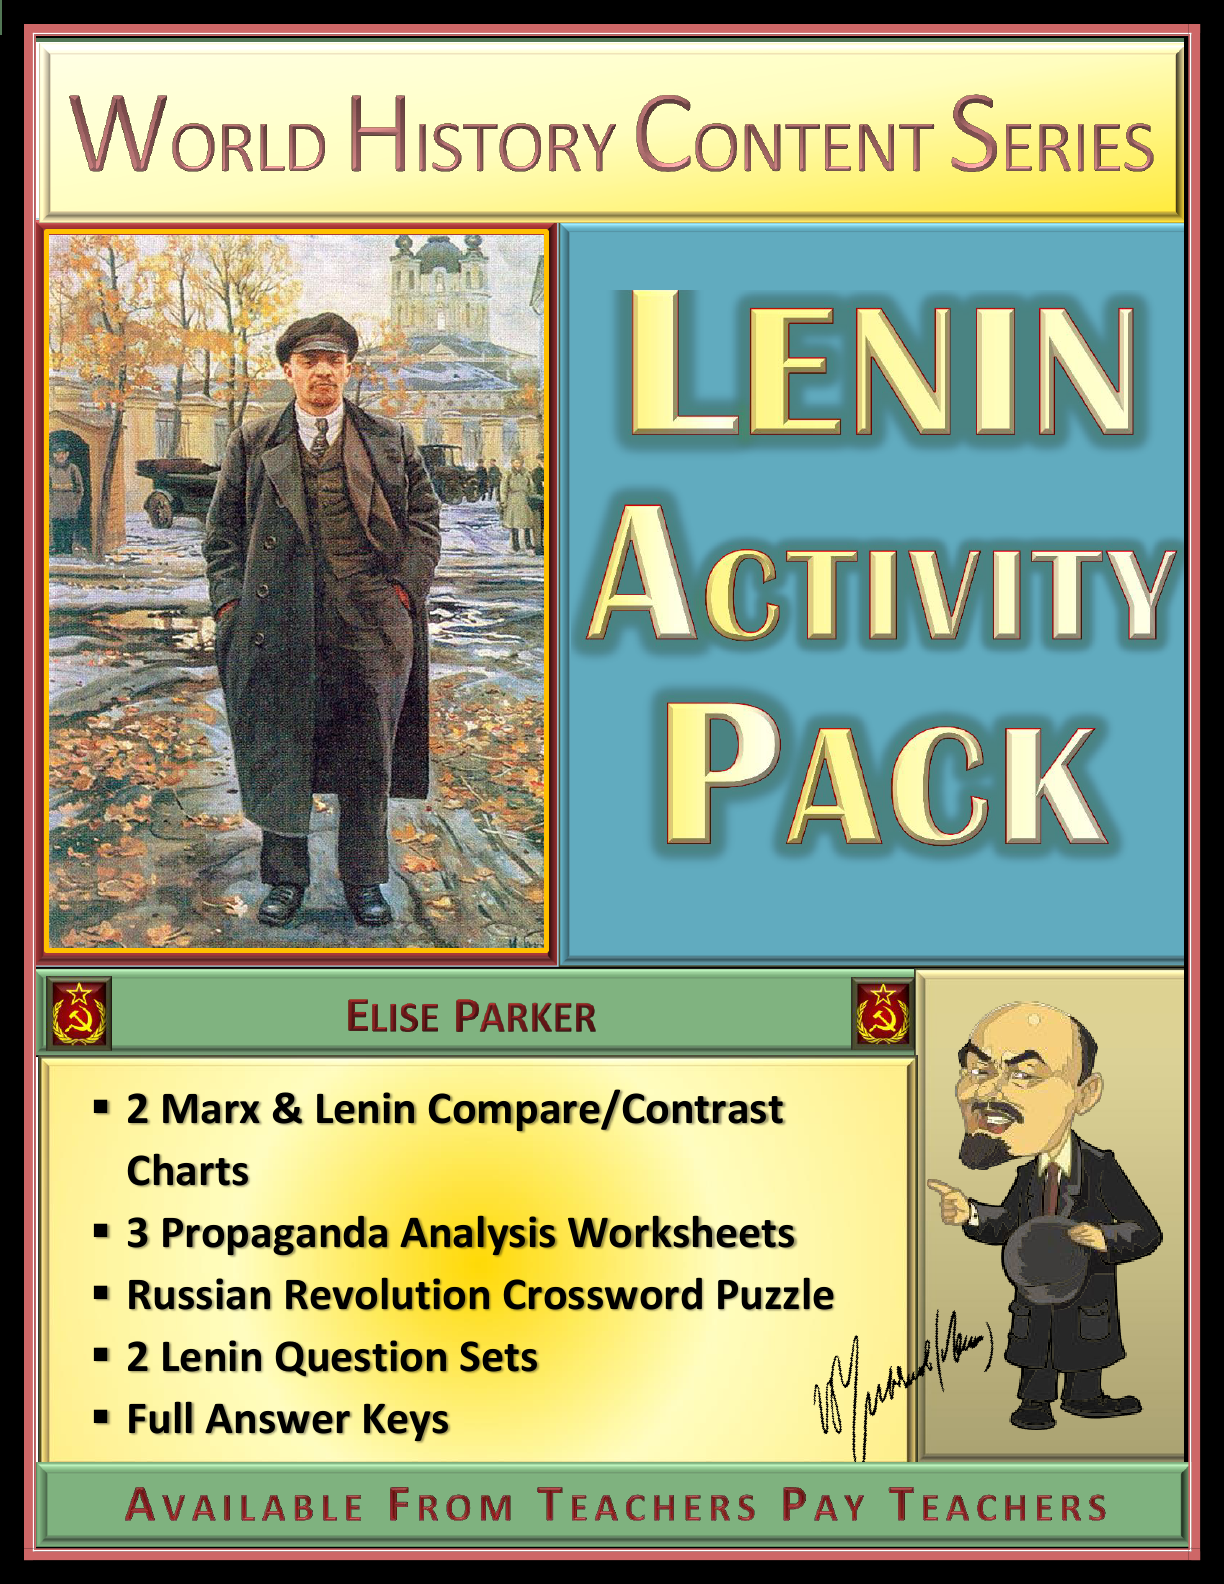 Lenin Activity Pack Charts Propaganda Worksheets